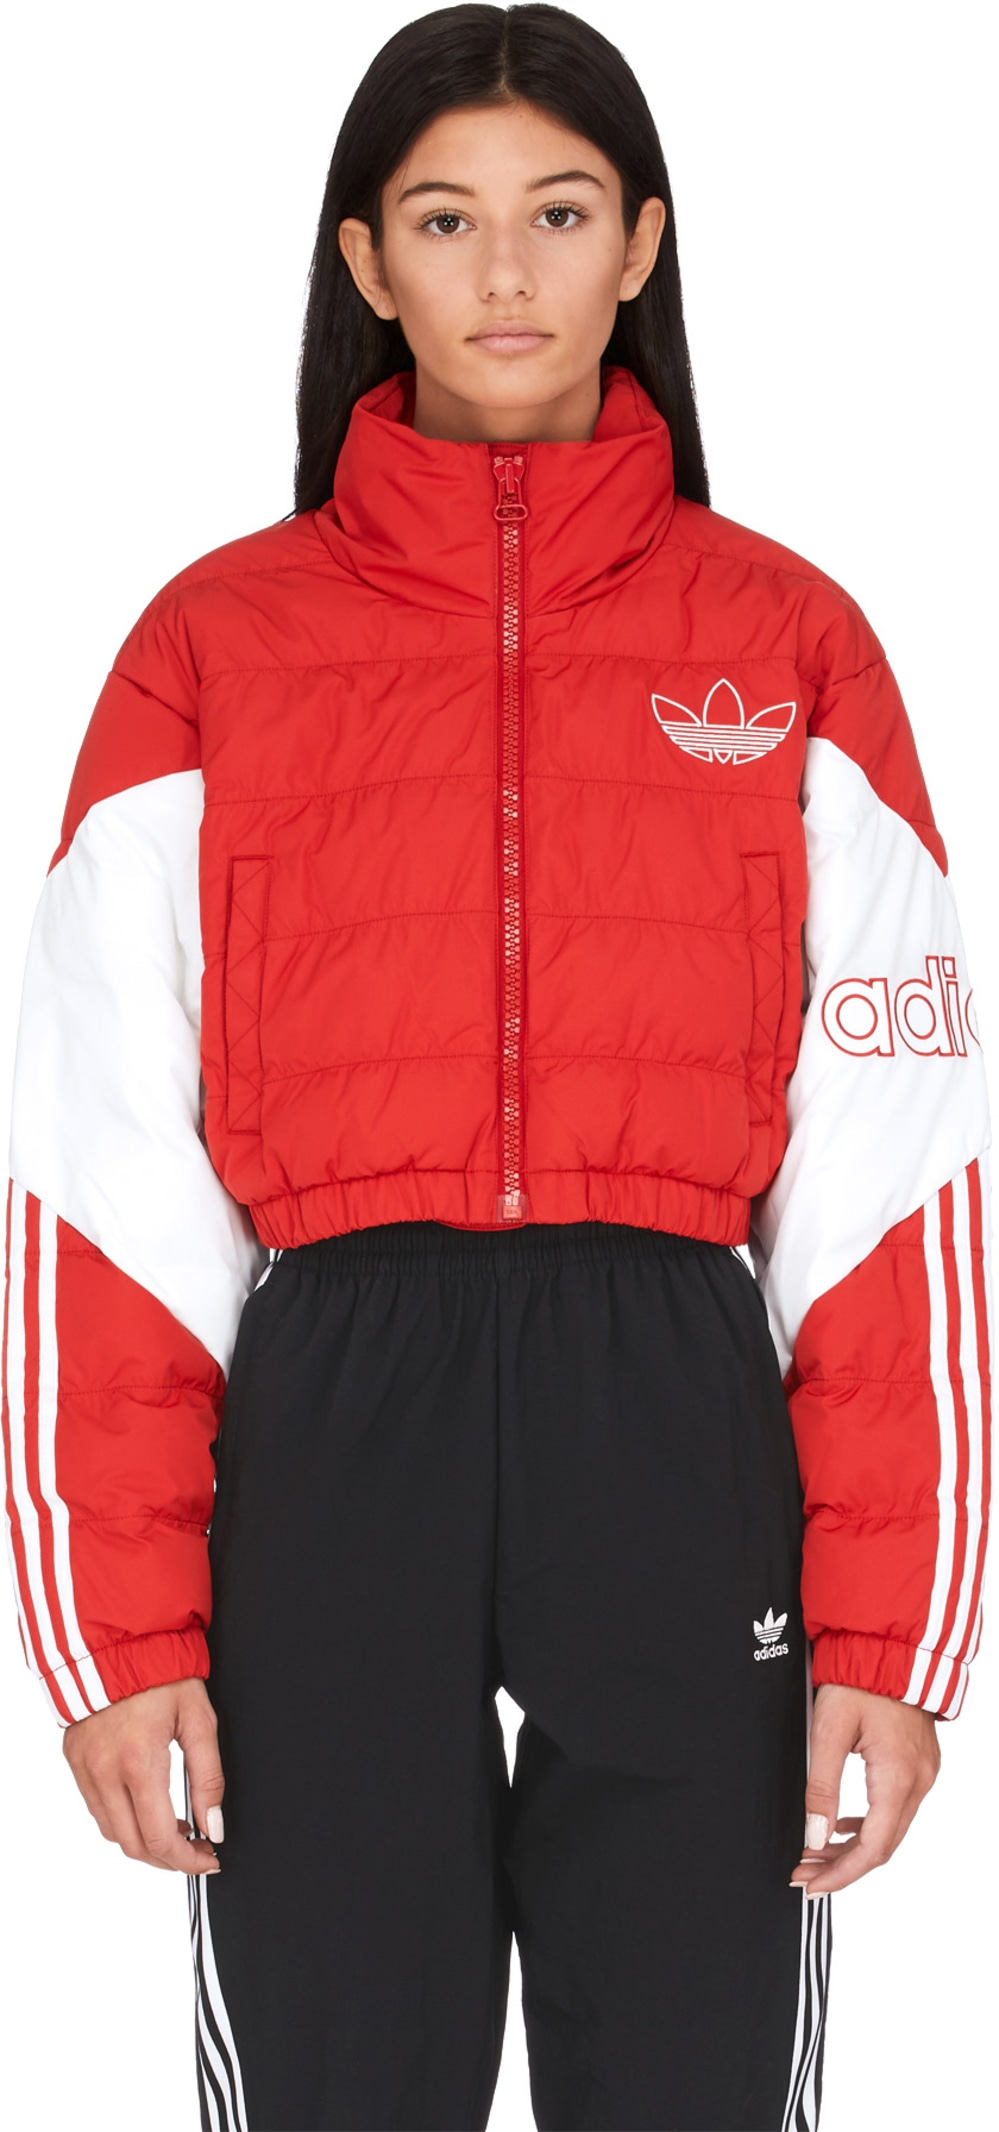 adidas Originals Cropped Puffer Jacket ScarletWhite